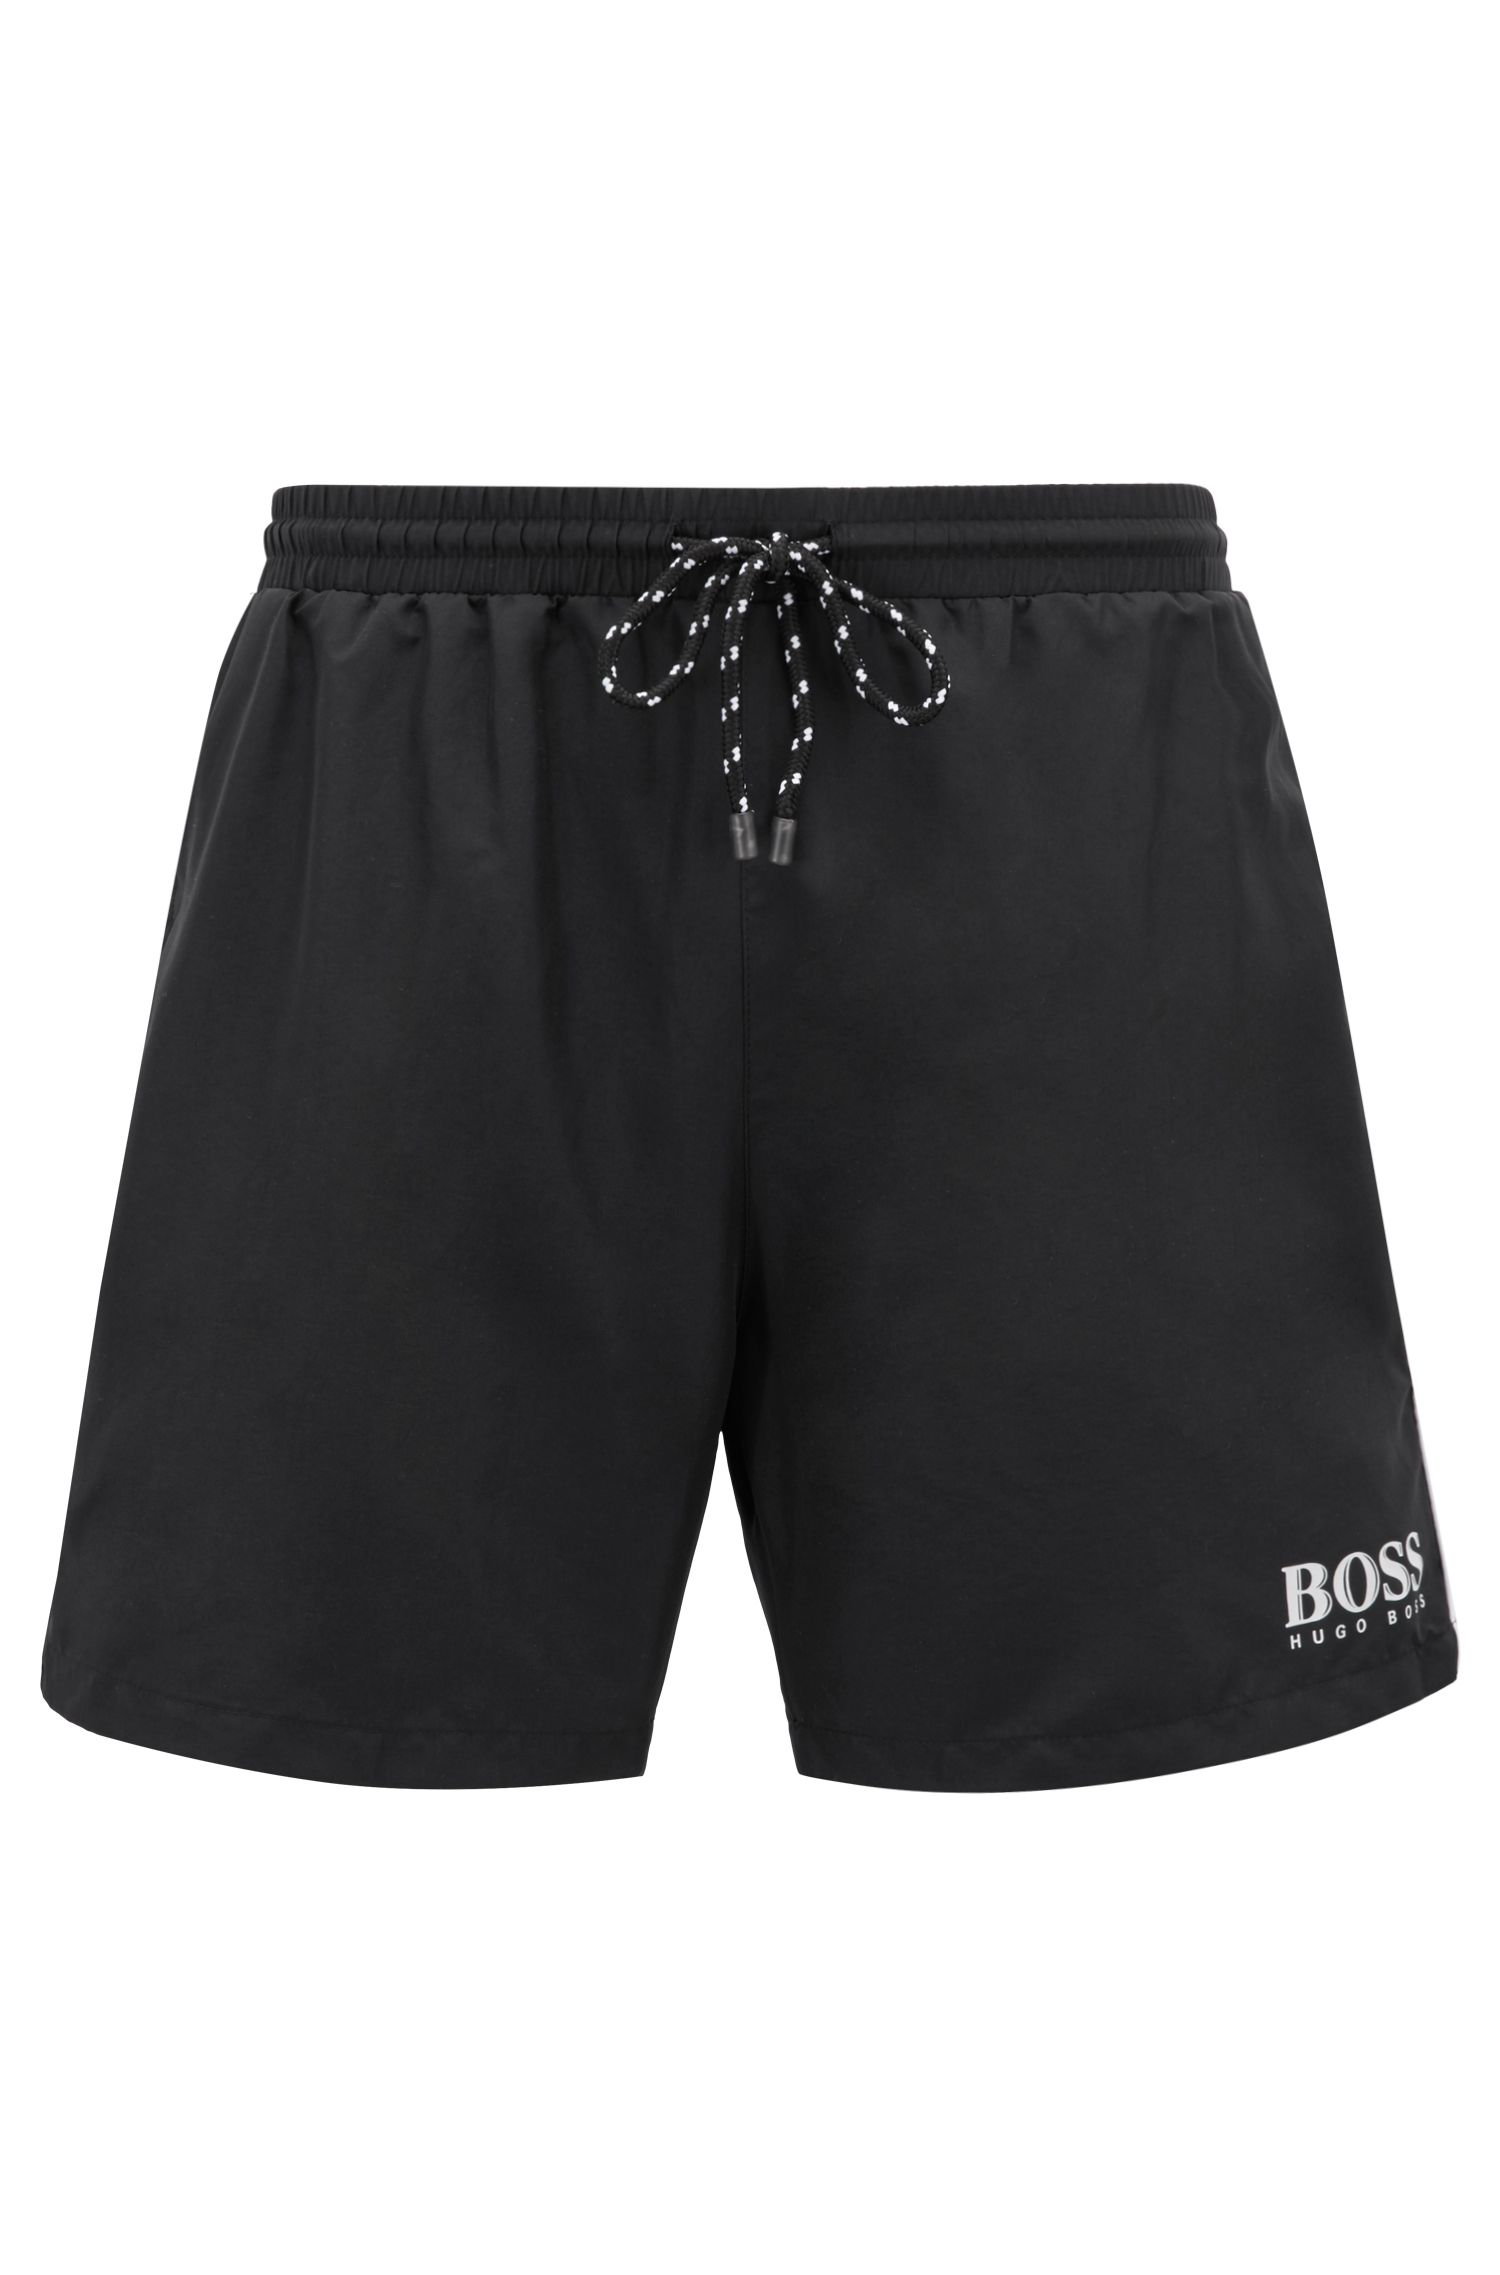 Drawstring swim shorts with logo detail, Black